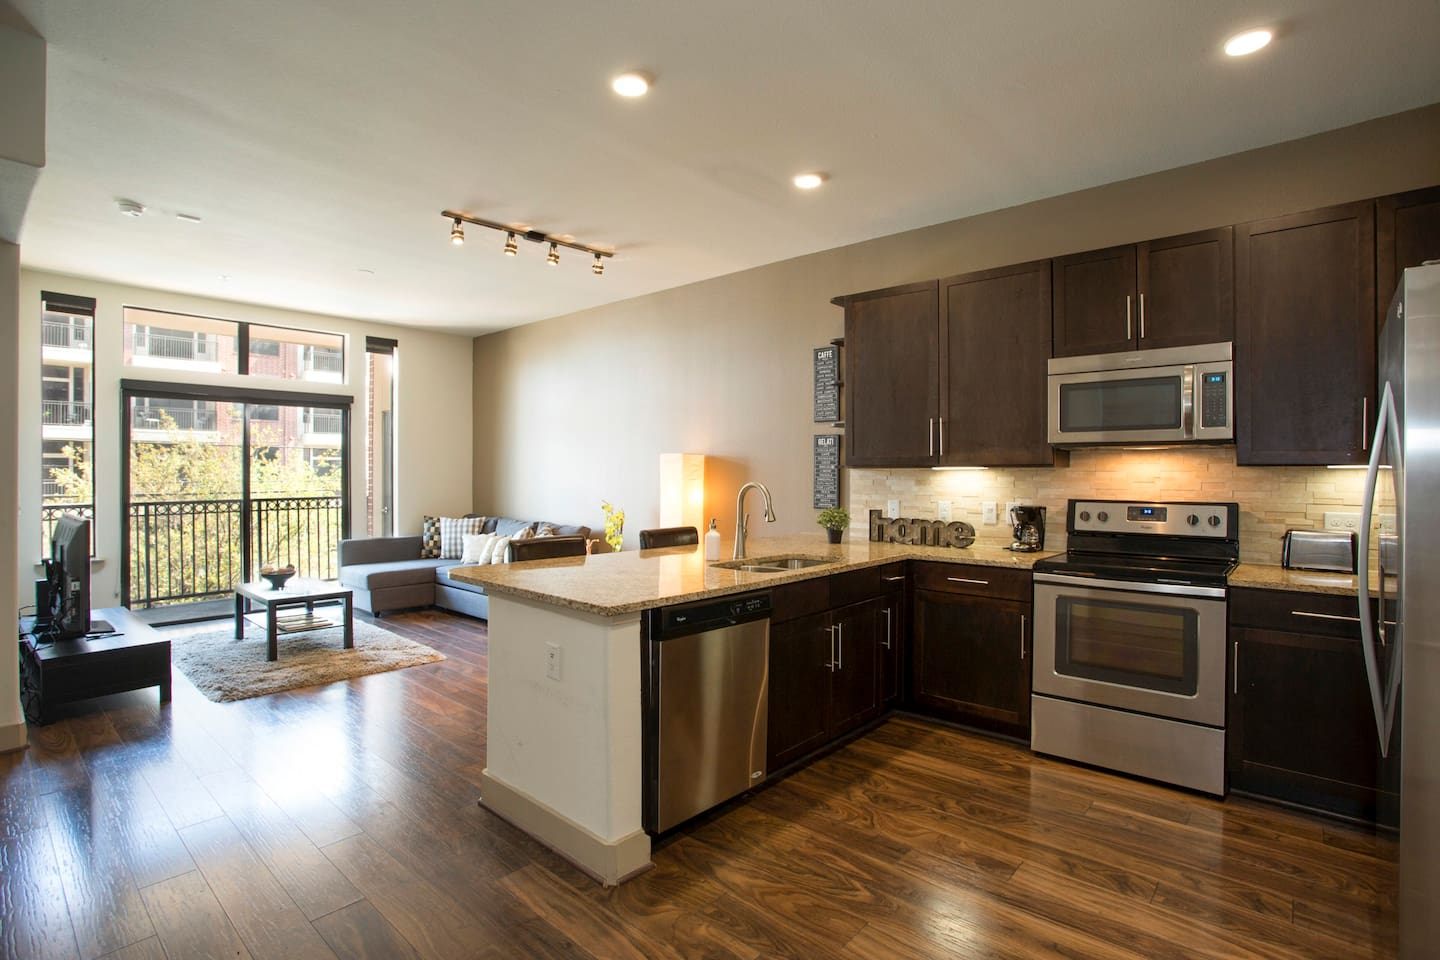 Spacious, super clean, fully stocked apartment makes for a relaxing and comforting stay.